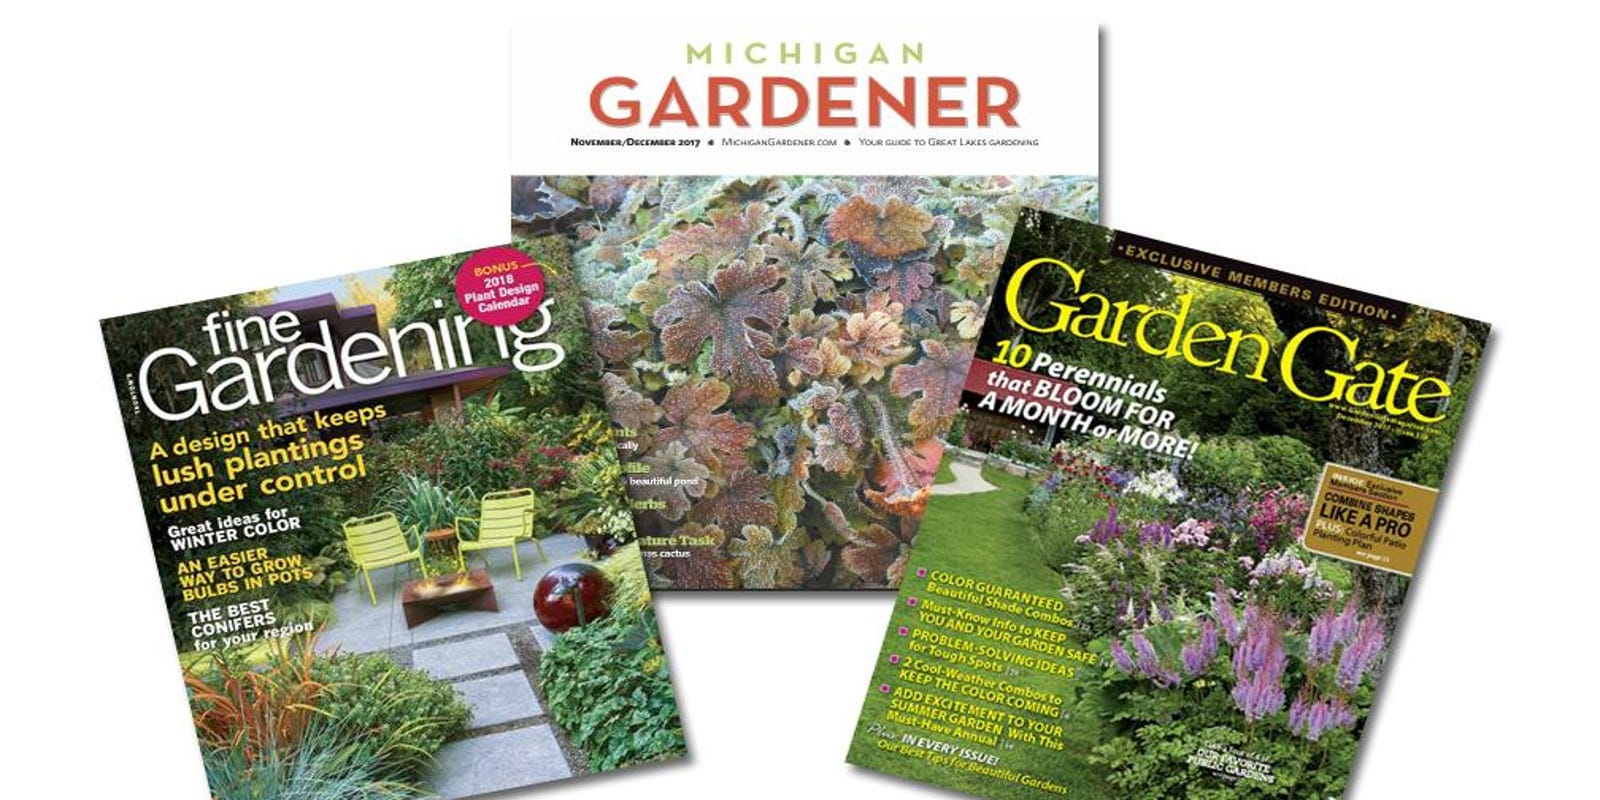 Magazines Fit Nicely Into Your Holiday Gift List